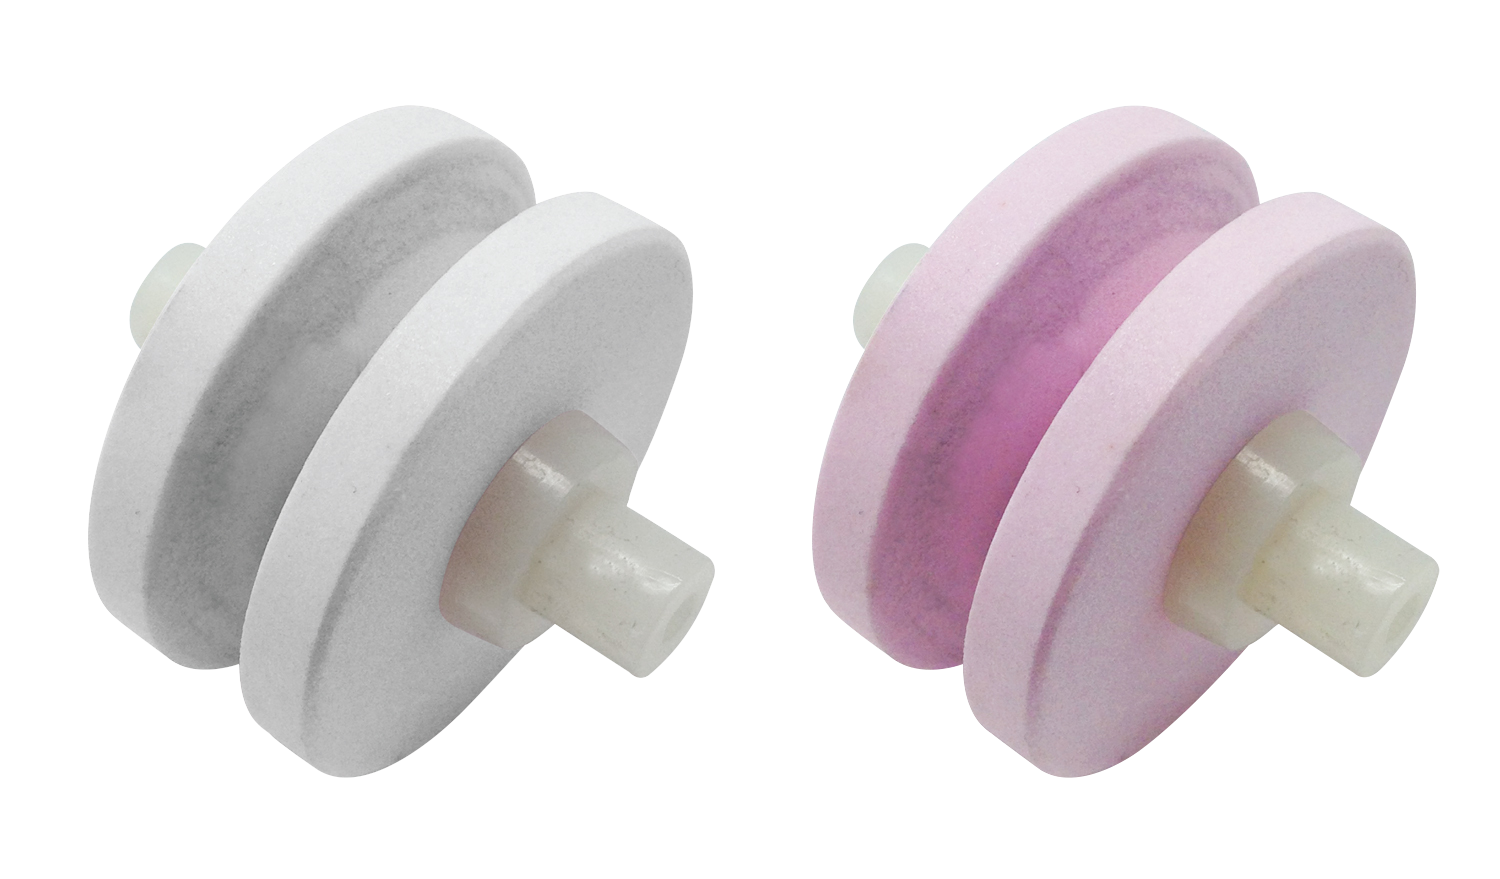 Global Set Of 2 Ceramic Wheels For Global Knife Sharpeners